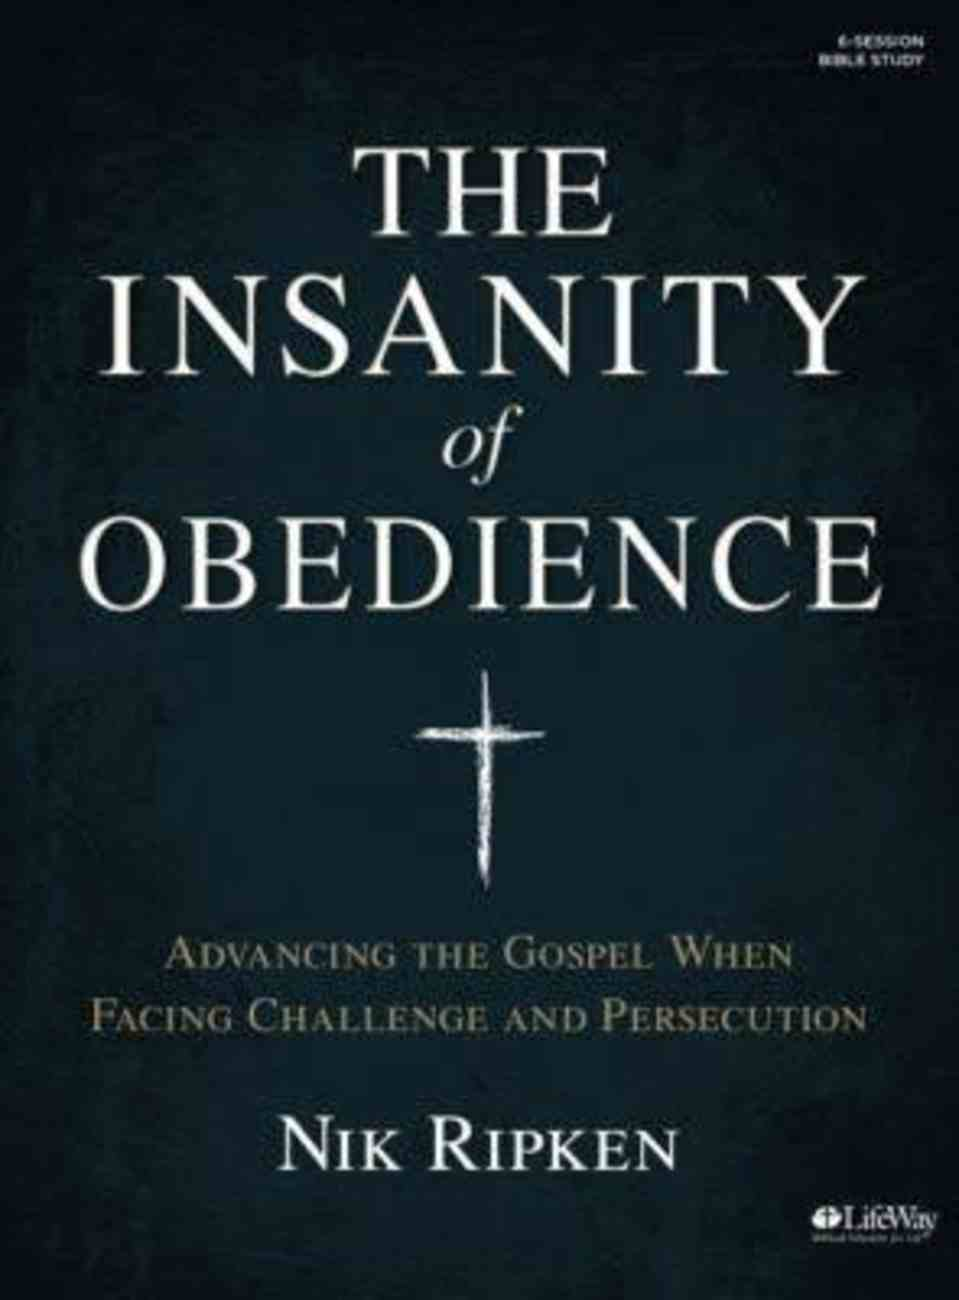 Insanity of Obedience, the (2 Dvds): Advancing the Gospel When Facing Challenge and Persecution (Dvd Only Set) DVD